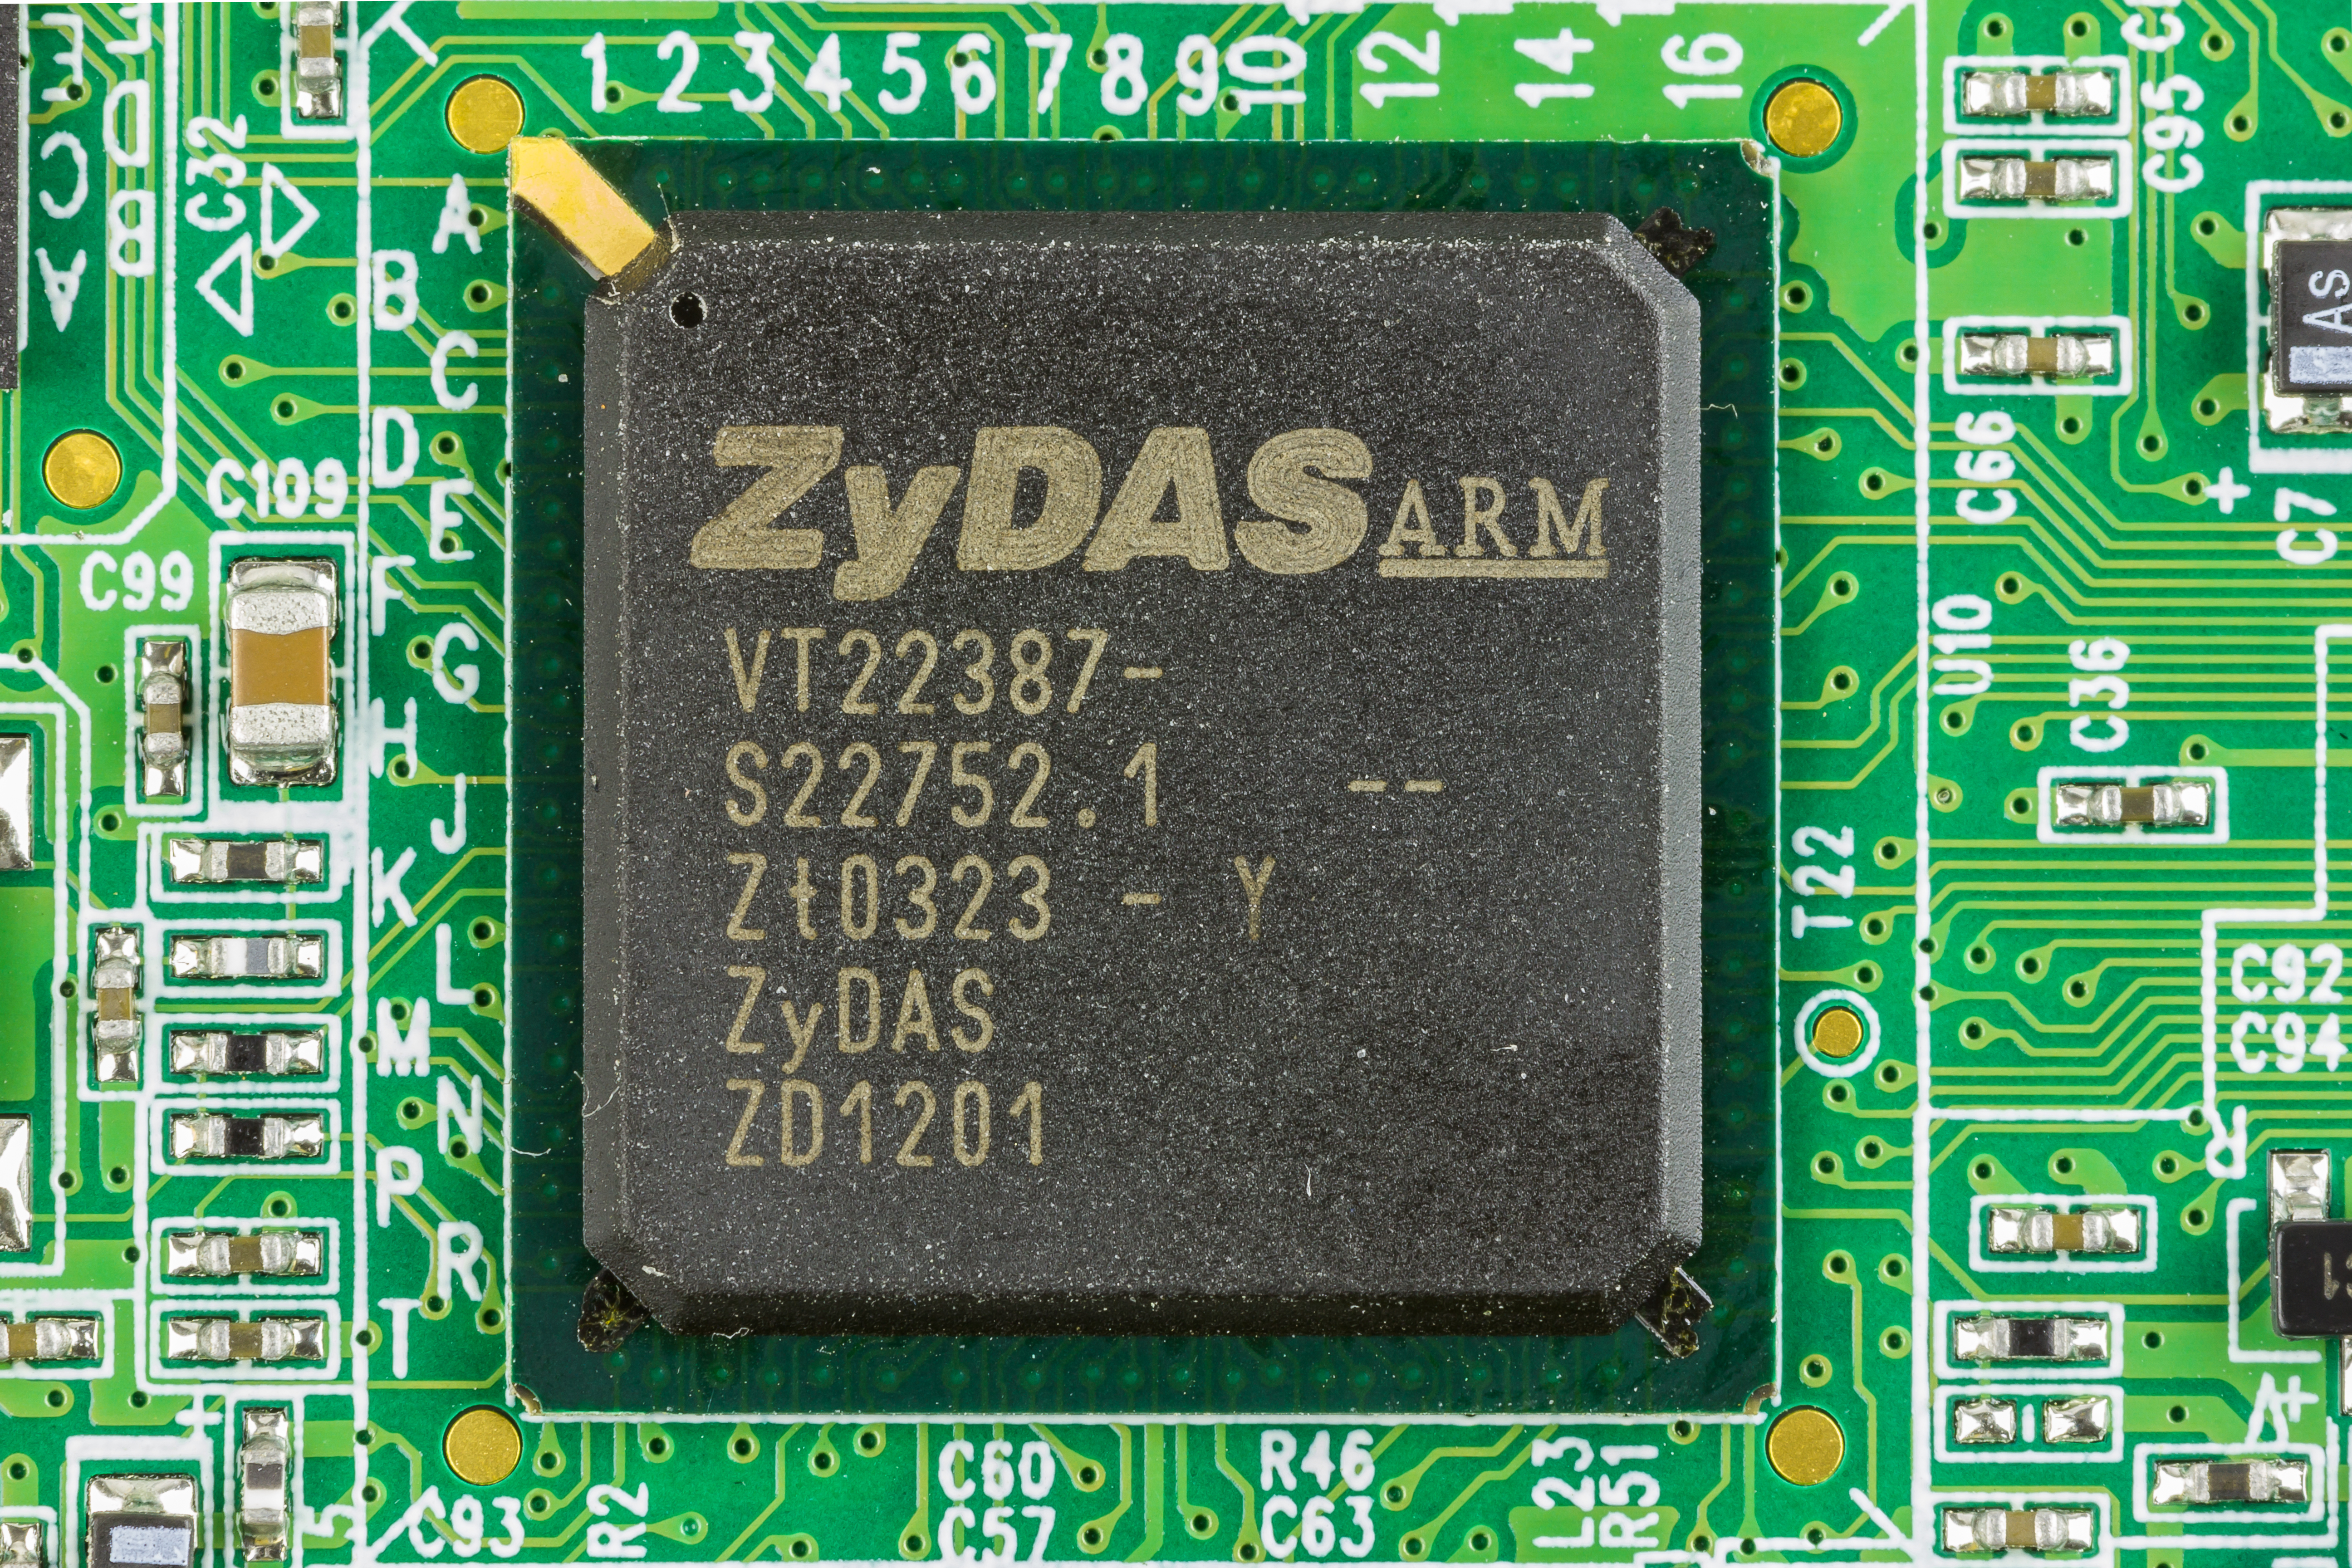 ZYDAS ZD1201 DRIVERS FOR WINDOWS DOWNLOAD